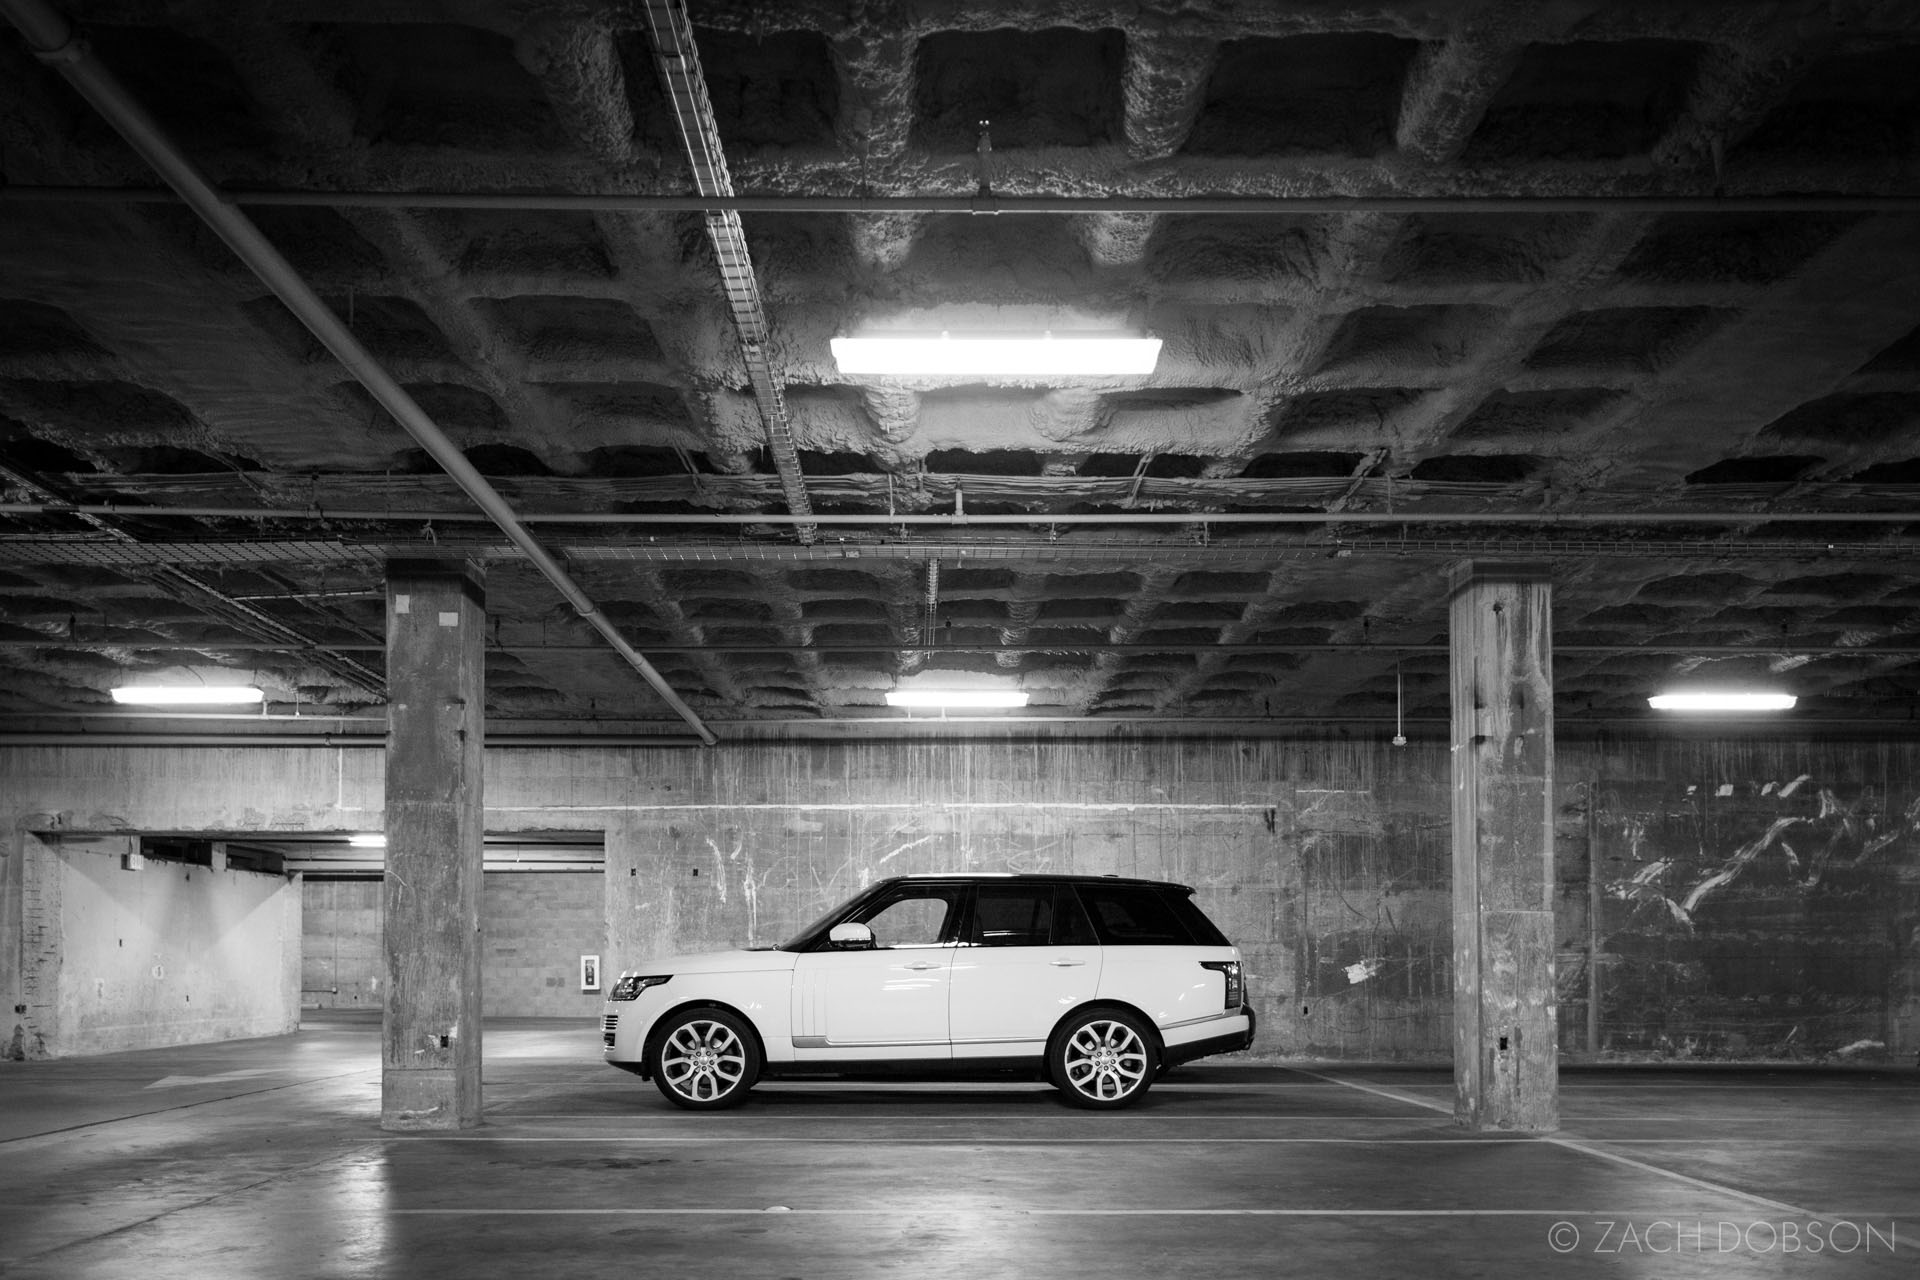 Indianapolis Range Rover Parking Garage